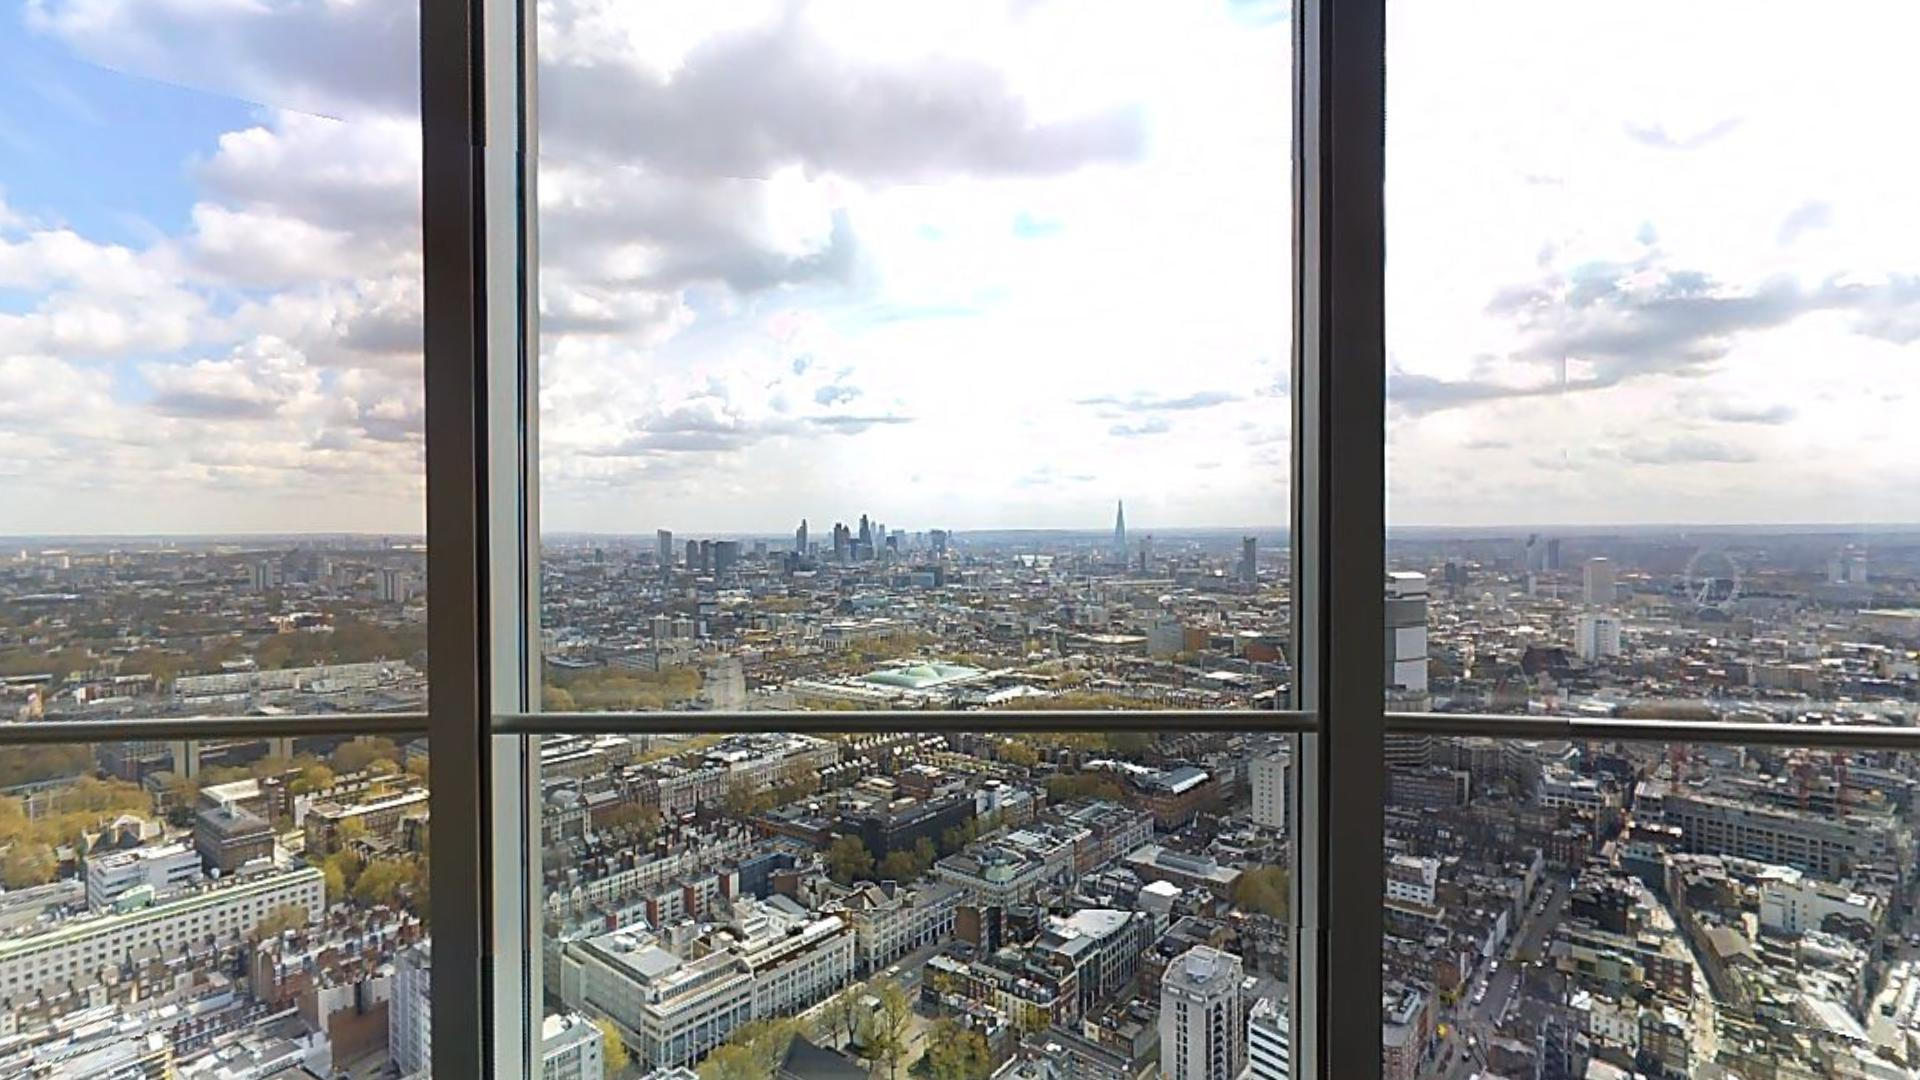 Top of BT Tower, London